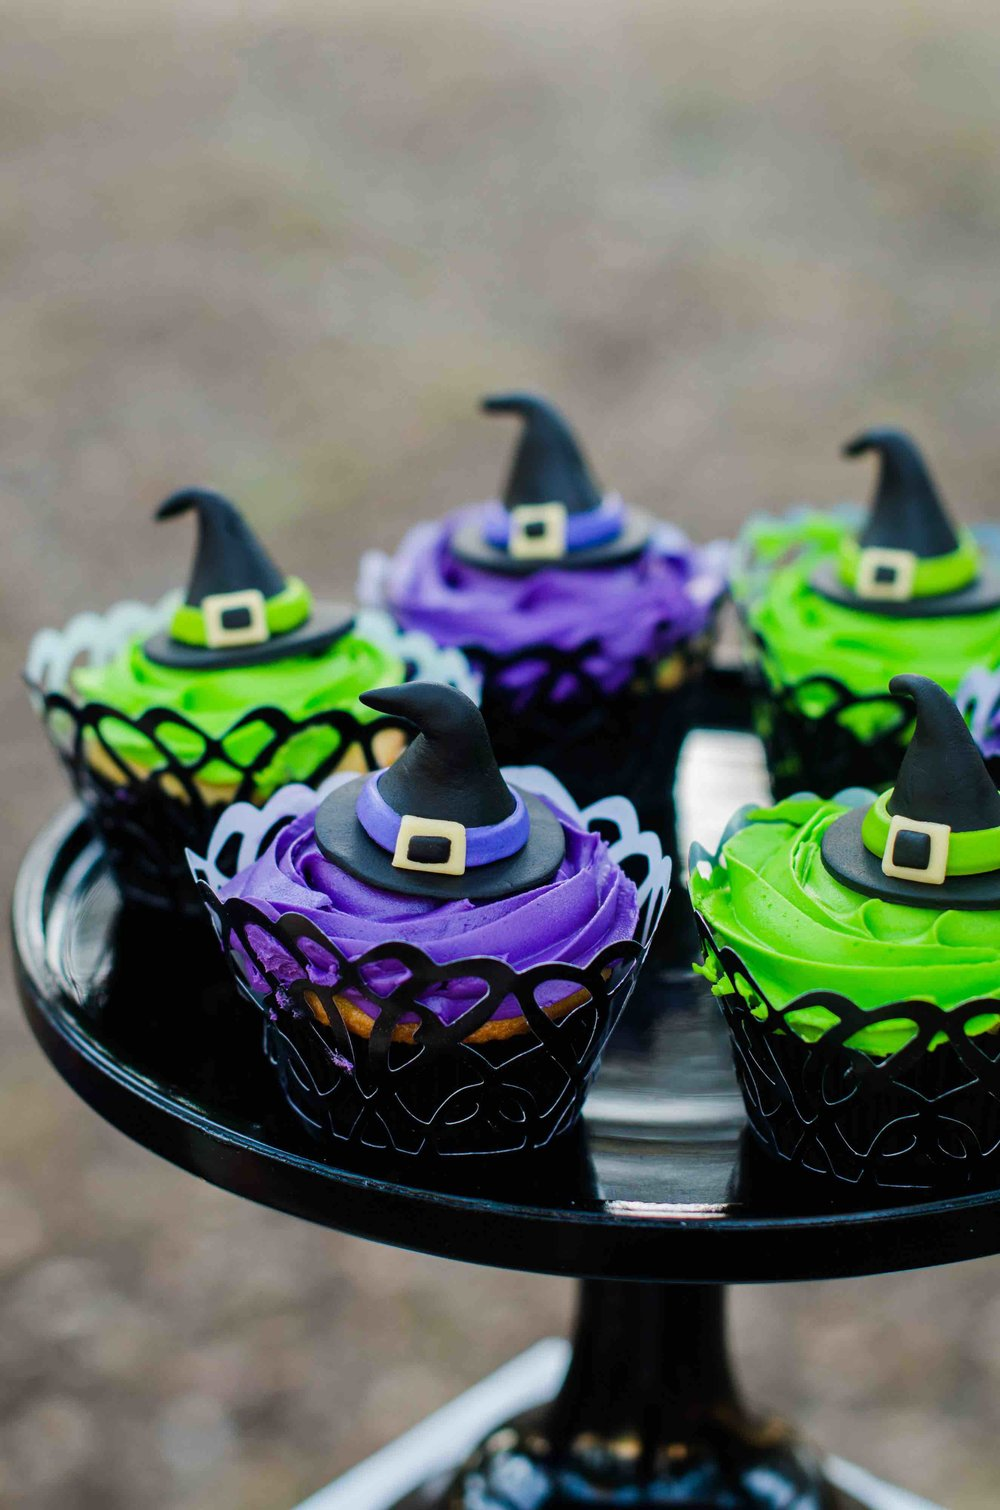 The perfect Halloween Party Cupcakes topped with a witches hat and displayed in decorative cupcake wrappers. Click to see all the Halloween Party Ideas that you can re-create for your very own Halloween Kids Party. Styled by party stylist Mint Event Design. #halloween #partyideas #partyinspiration #partydecor #desserttable #halloweencakes #halloweencupcakes